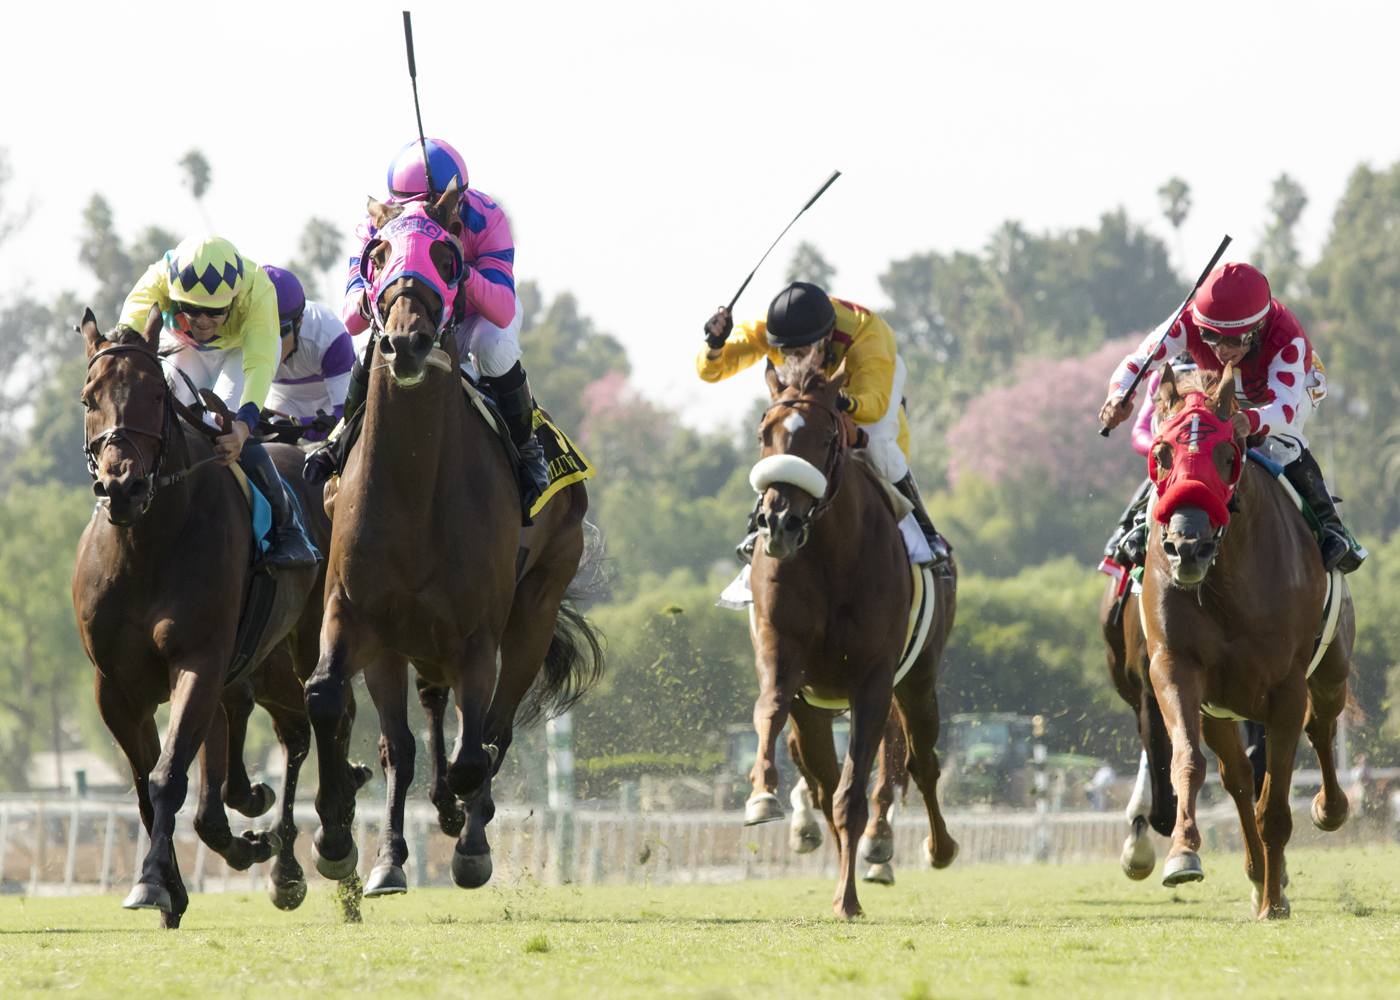 Ashleyluvssugar and jockey Gary Stevens, second from lef, compete in the Grade II, $200,000 John Henry Turf Championship at Santa Anita Park in Arcadia, Calif., Sunday, Oct. 2, 2016. They won the race. (Benoit Photo via AP)